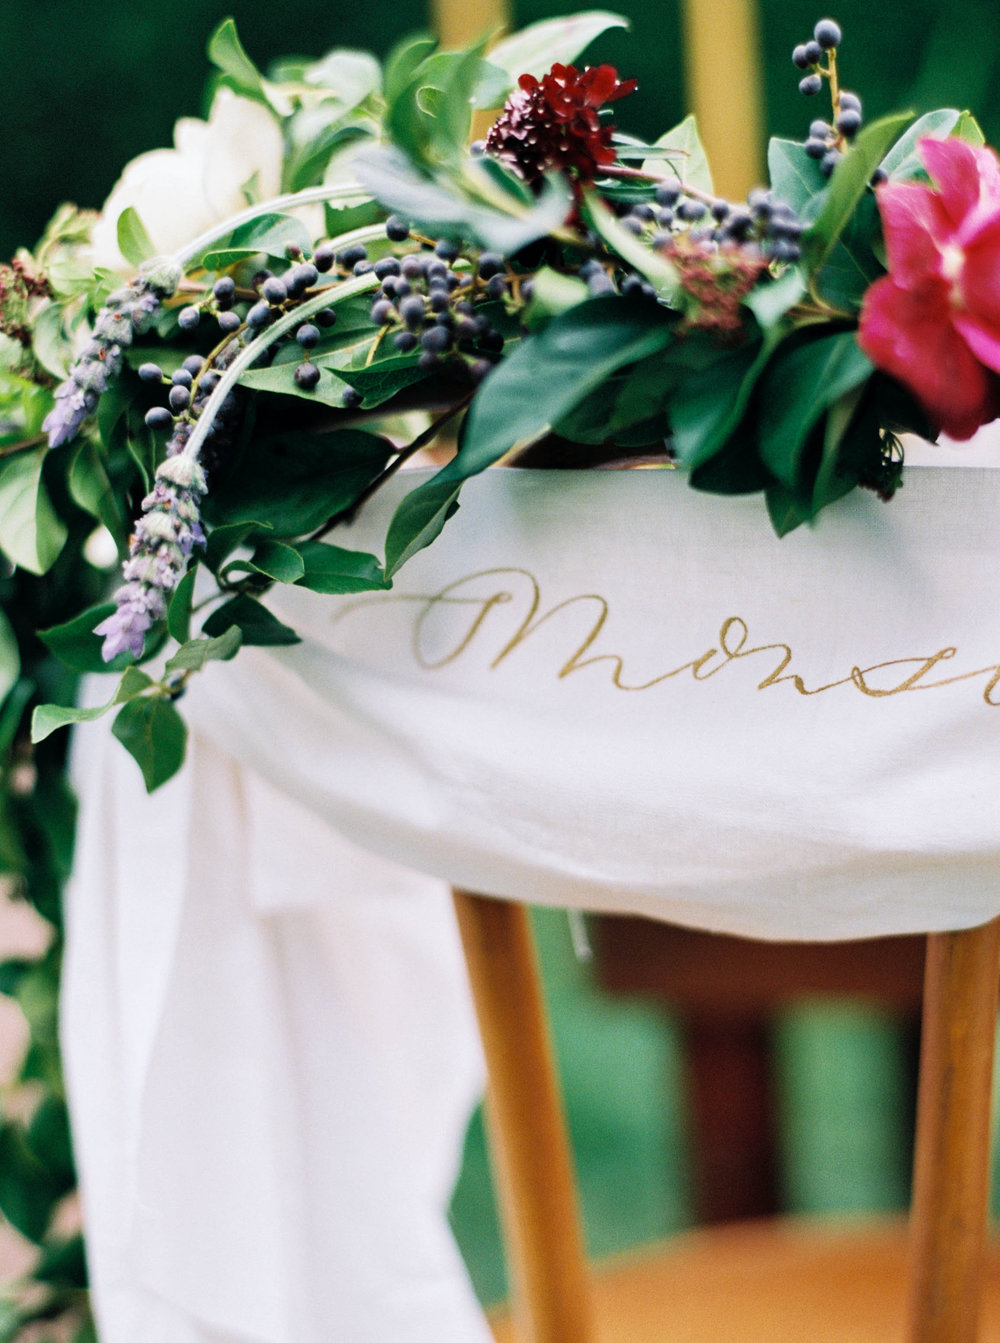 chair florals for wedding chair backs.JPG